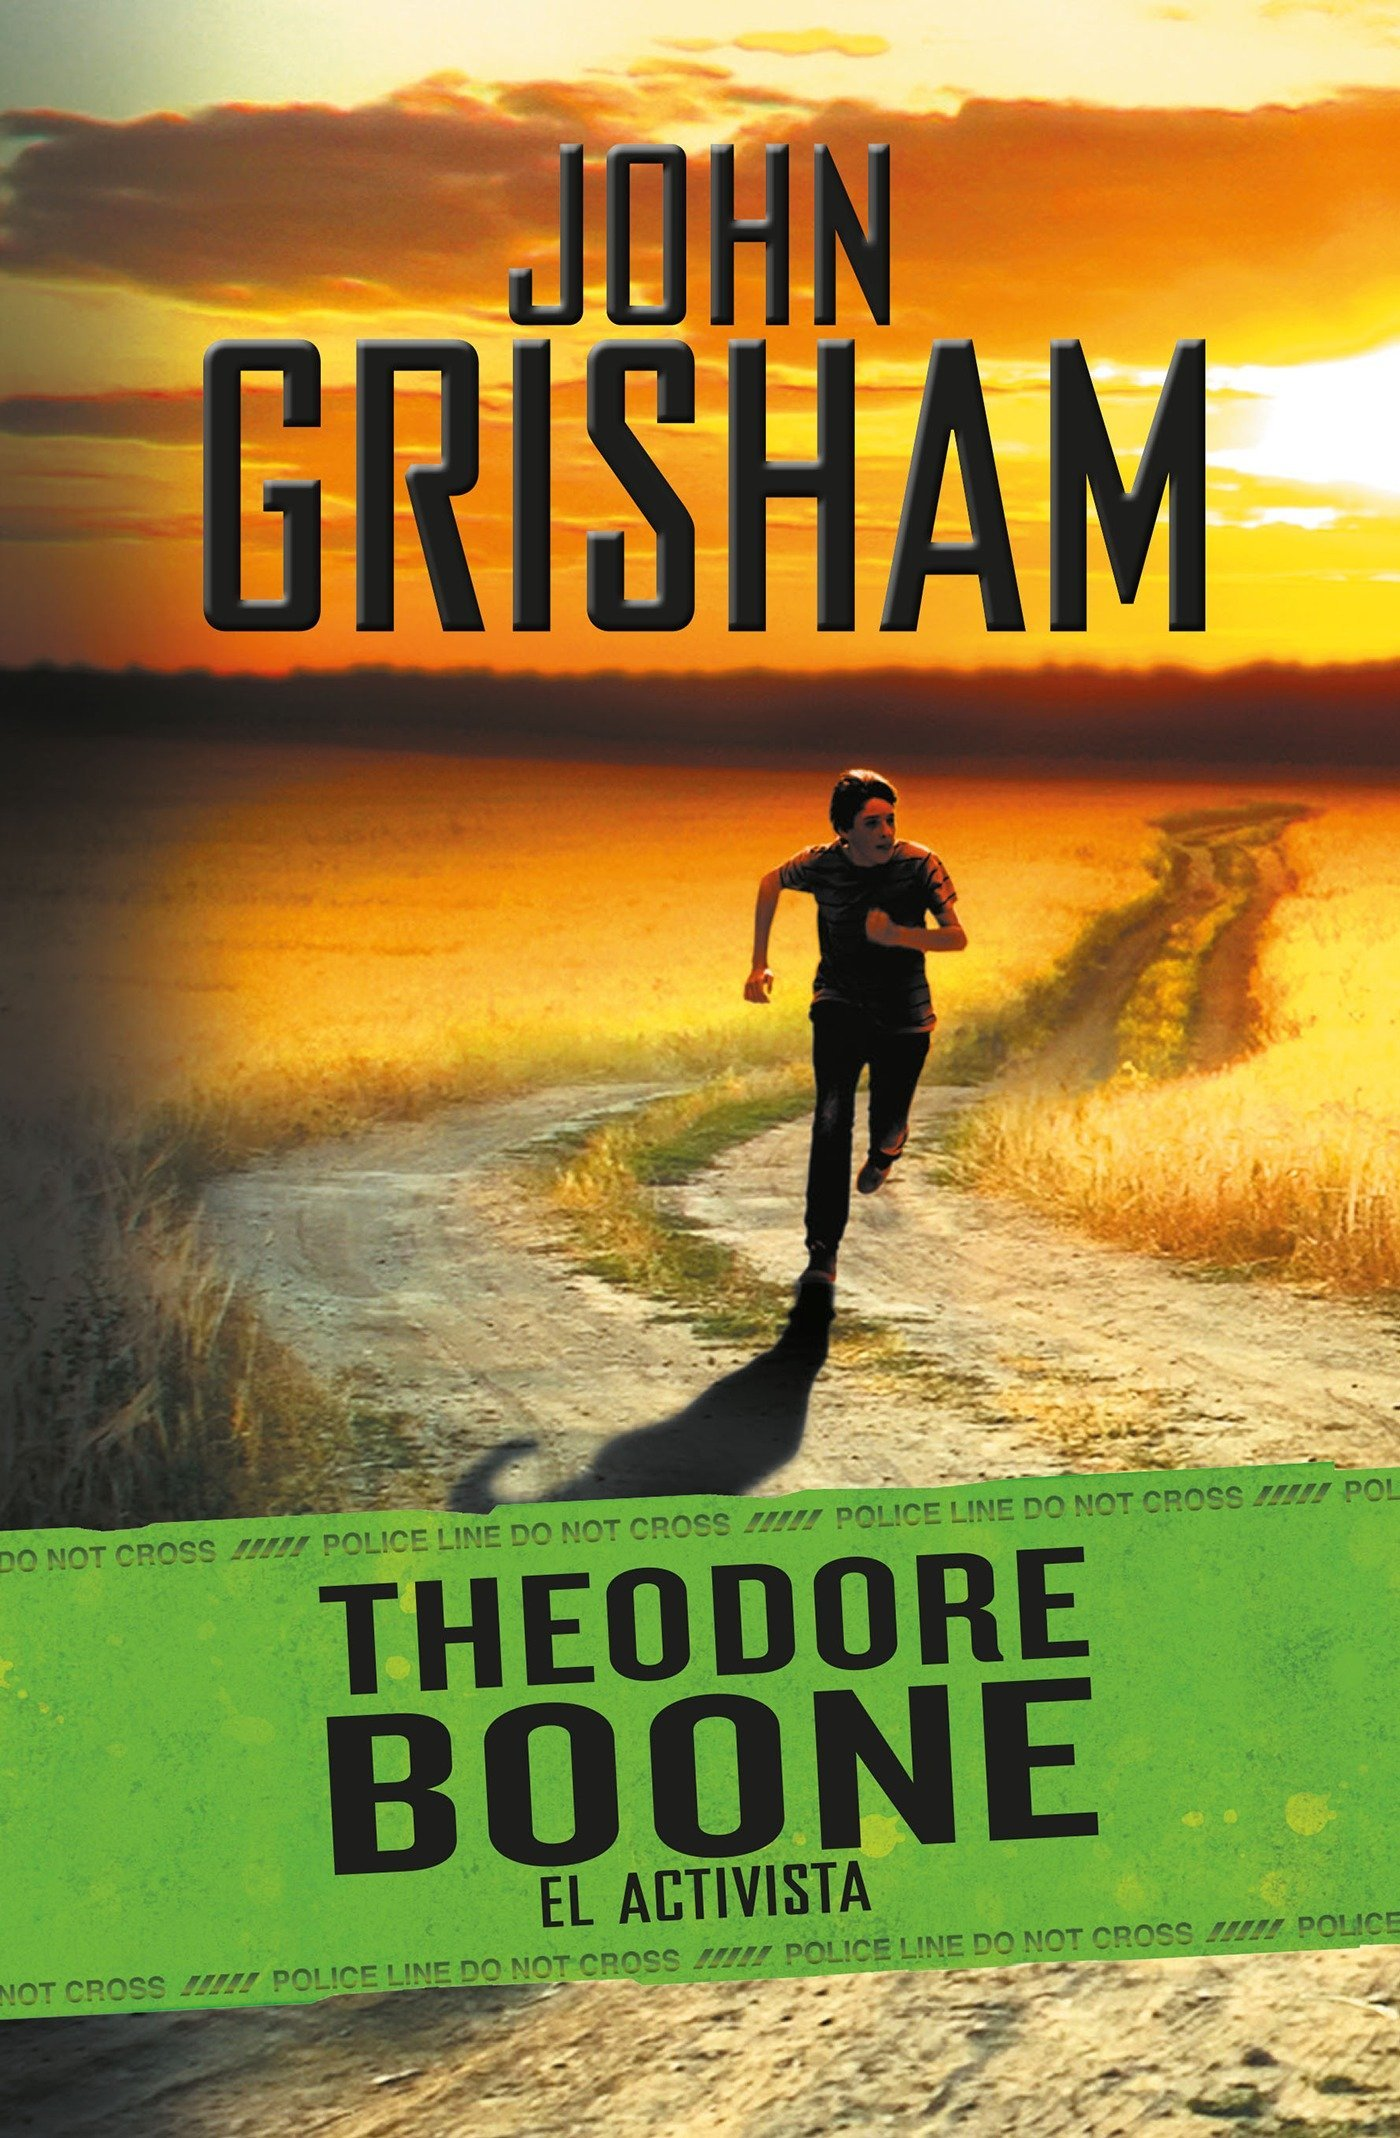 Amazon.com: El activista / The Activist (Theodore Boone) (Spanish Edition) (9786073130400): John Grisham: Books